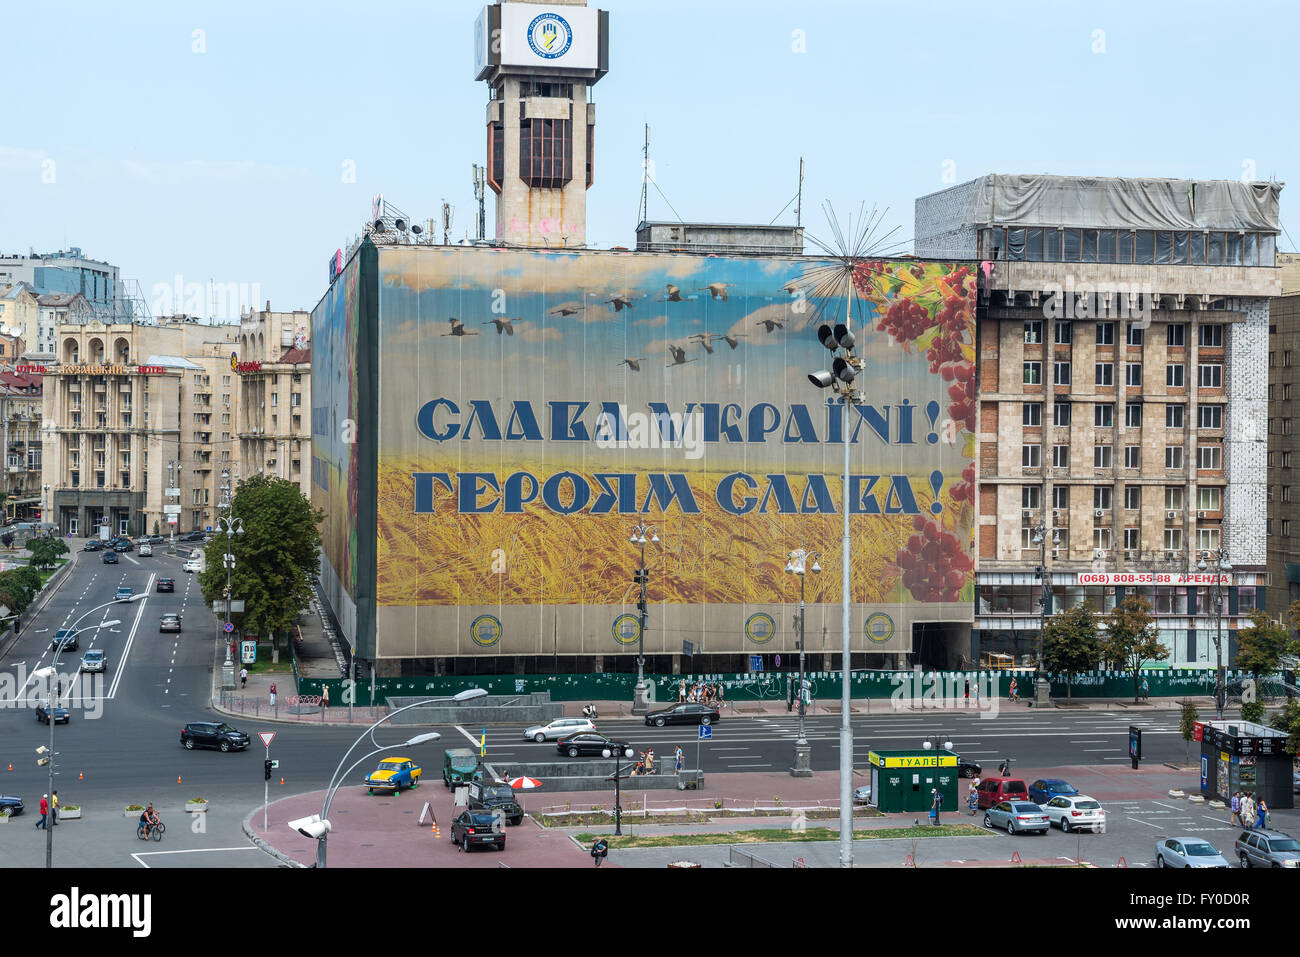 Trade Unions Building on Maidan Nezalezhnosti (Independence Square) in Kiev, Ukraine - Stock Image